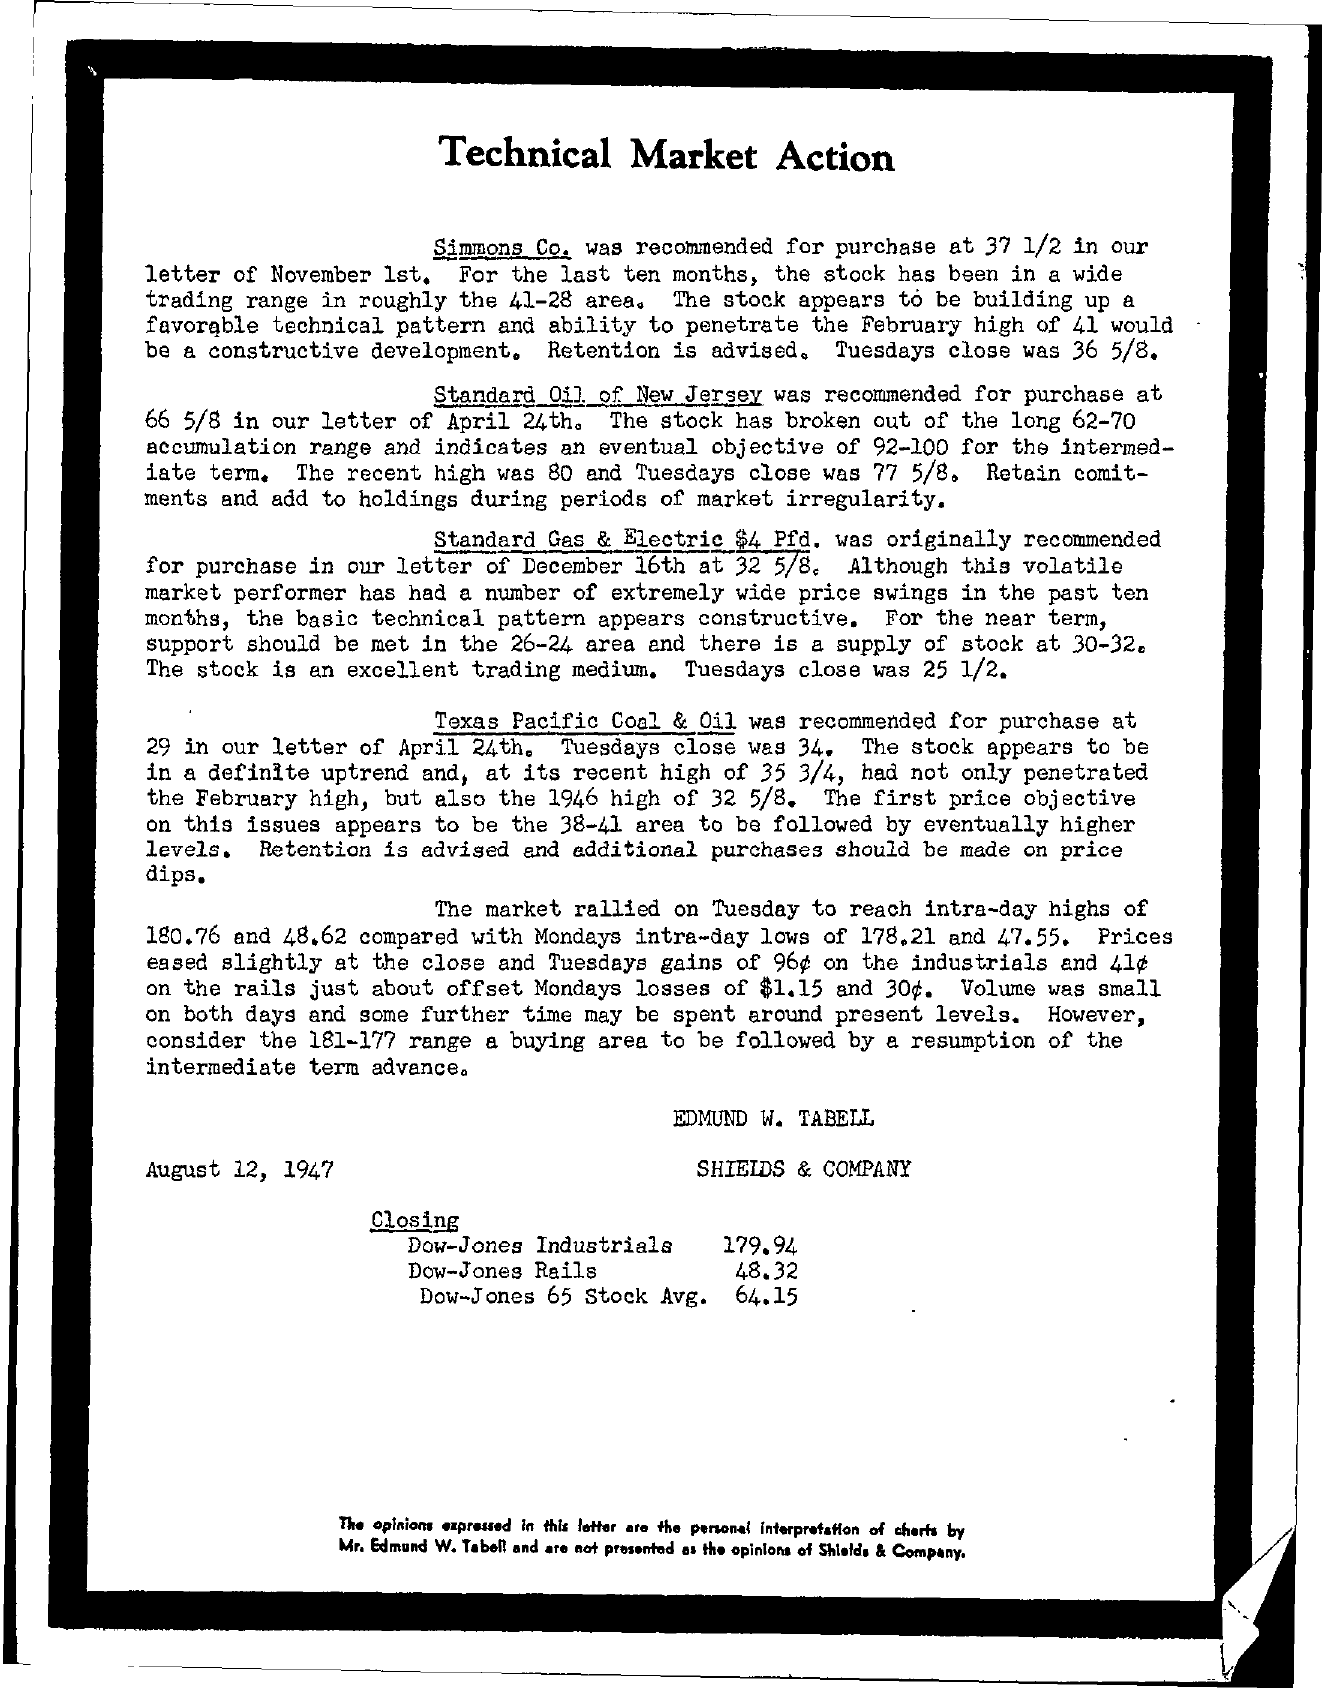 Tabell's Market Letter - August 12, 1947